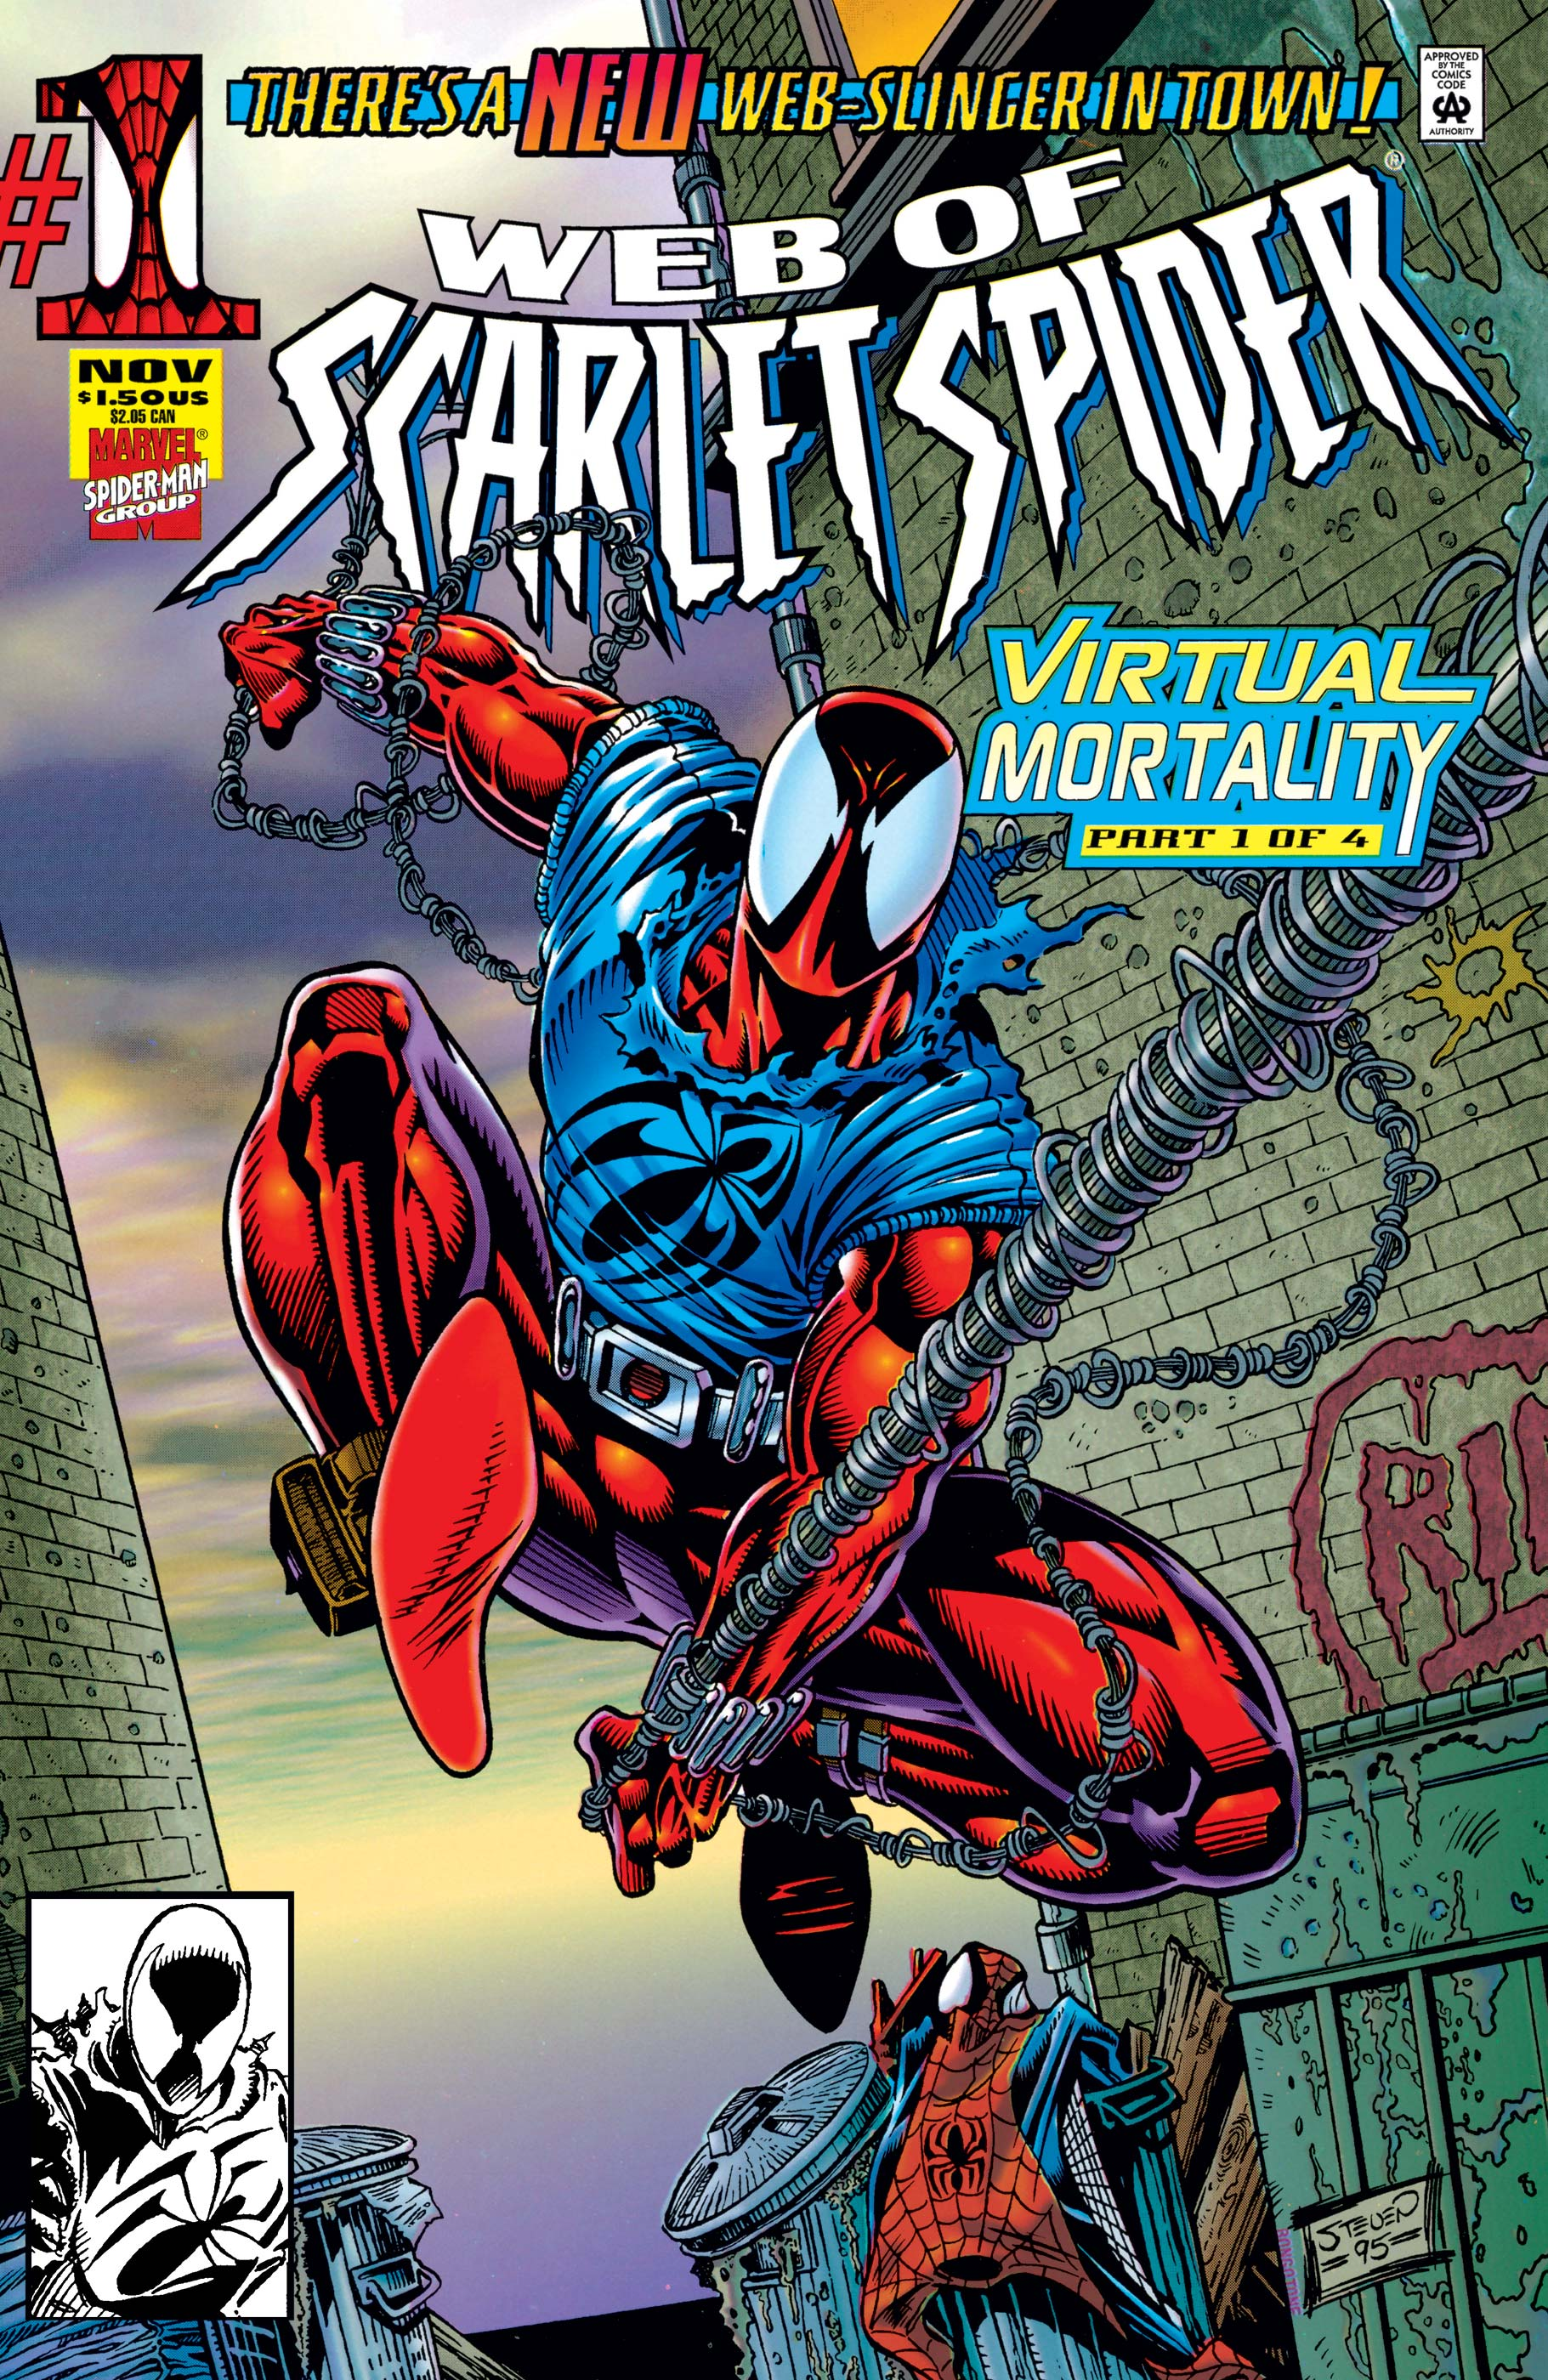 Web of Scarlet Spider (1995) #1